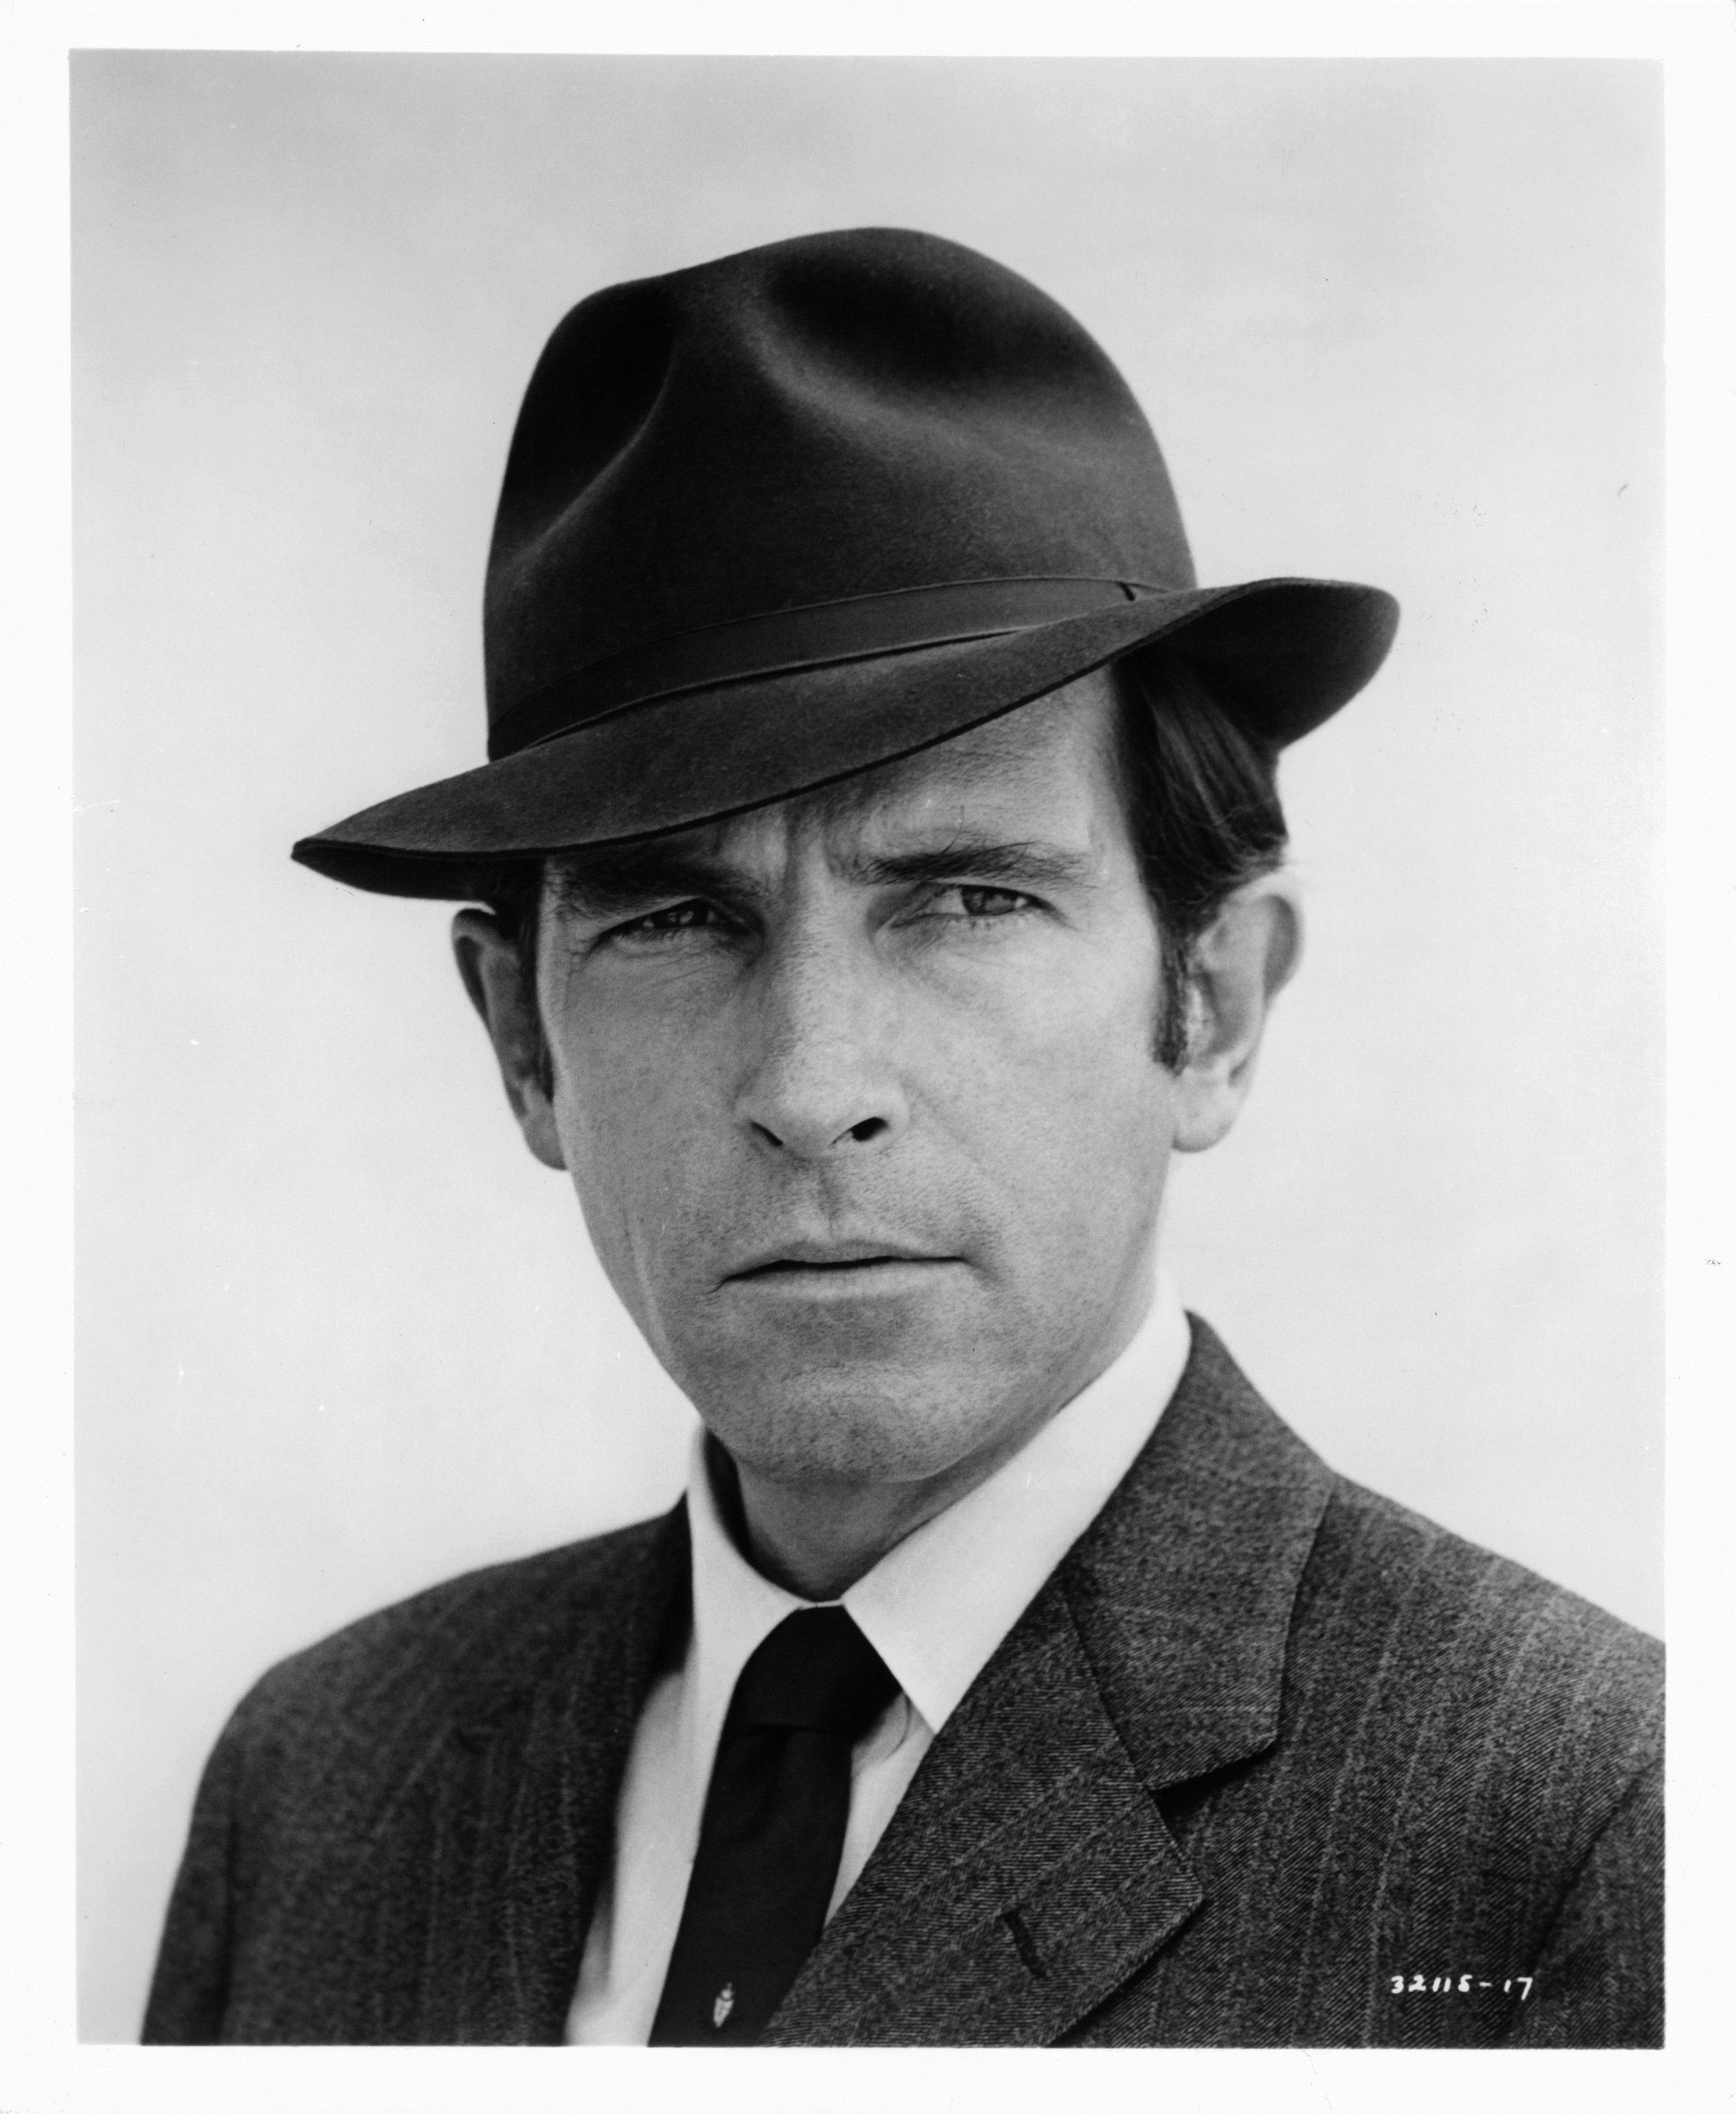 """JD Cannon stars as Peter Clifford in the television series """"McCloud"""" in 1970. 